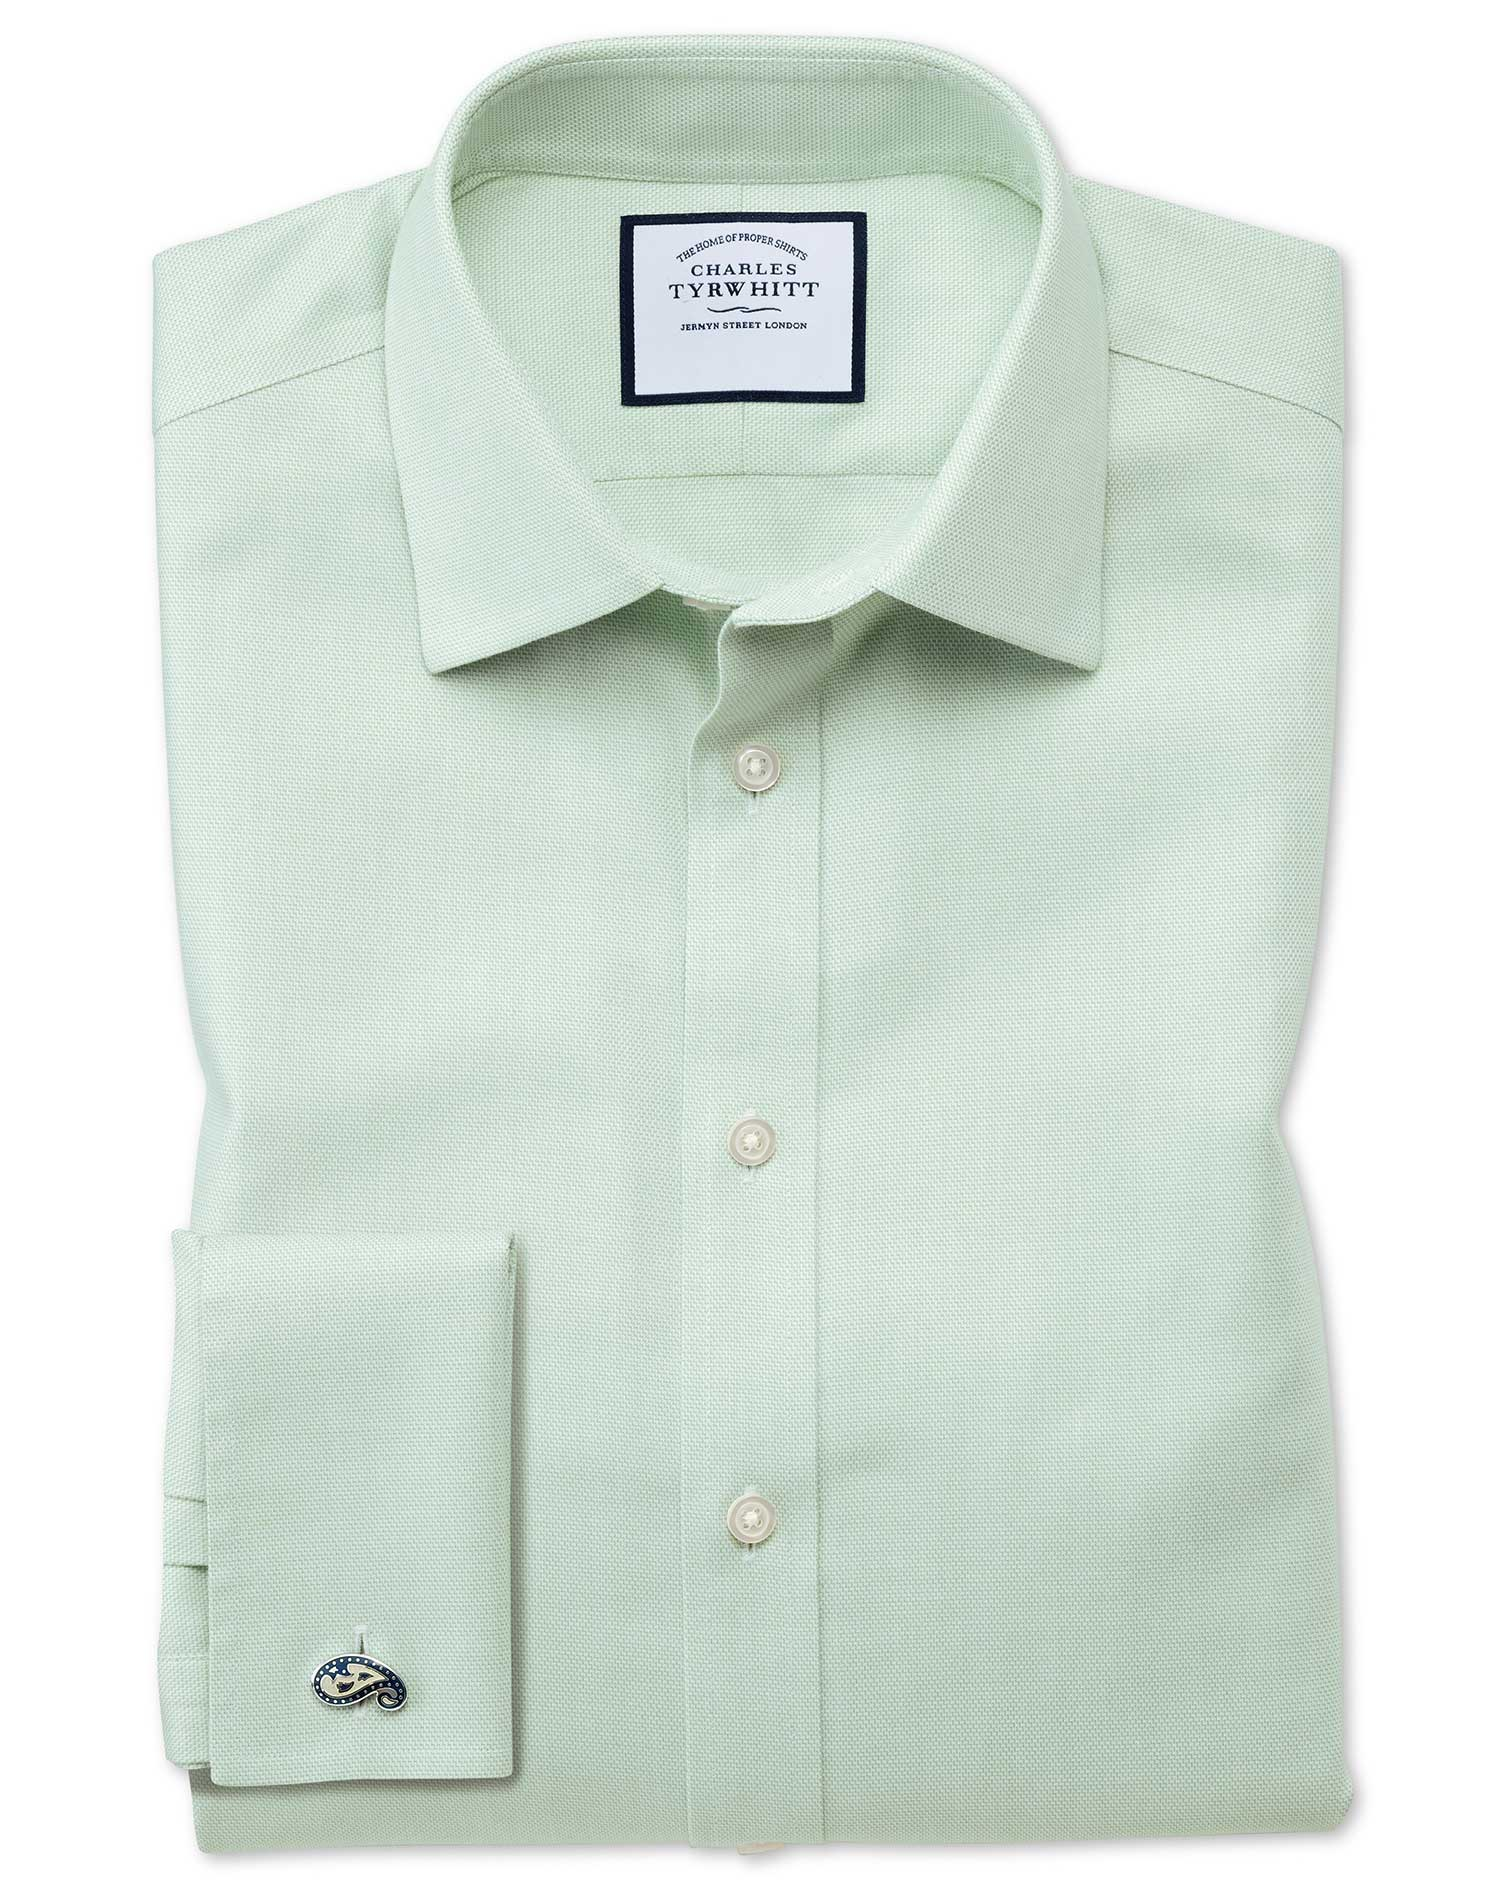 Slim Fit Non-Iron Step Weave Green Cotton Formal Shirt Single Cuff Size 17.5/35 by Charles Tyrwhitt